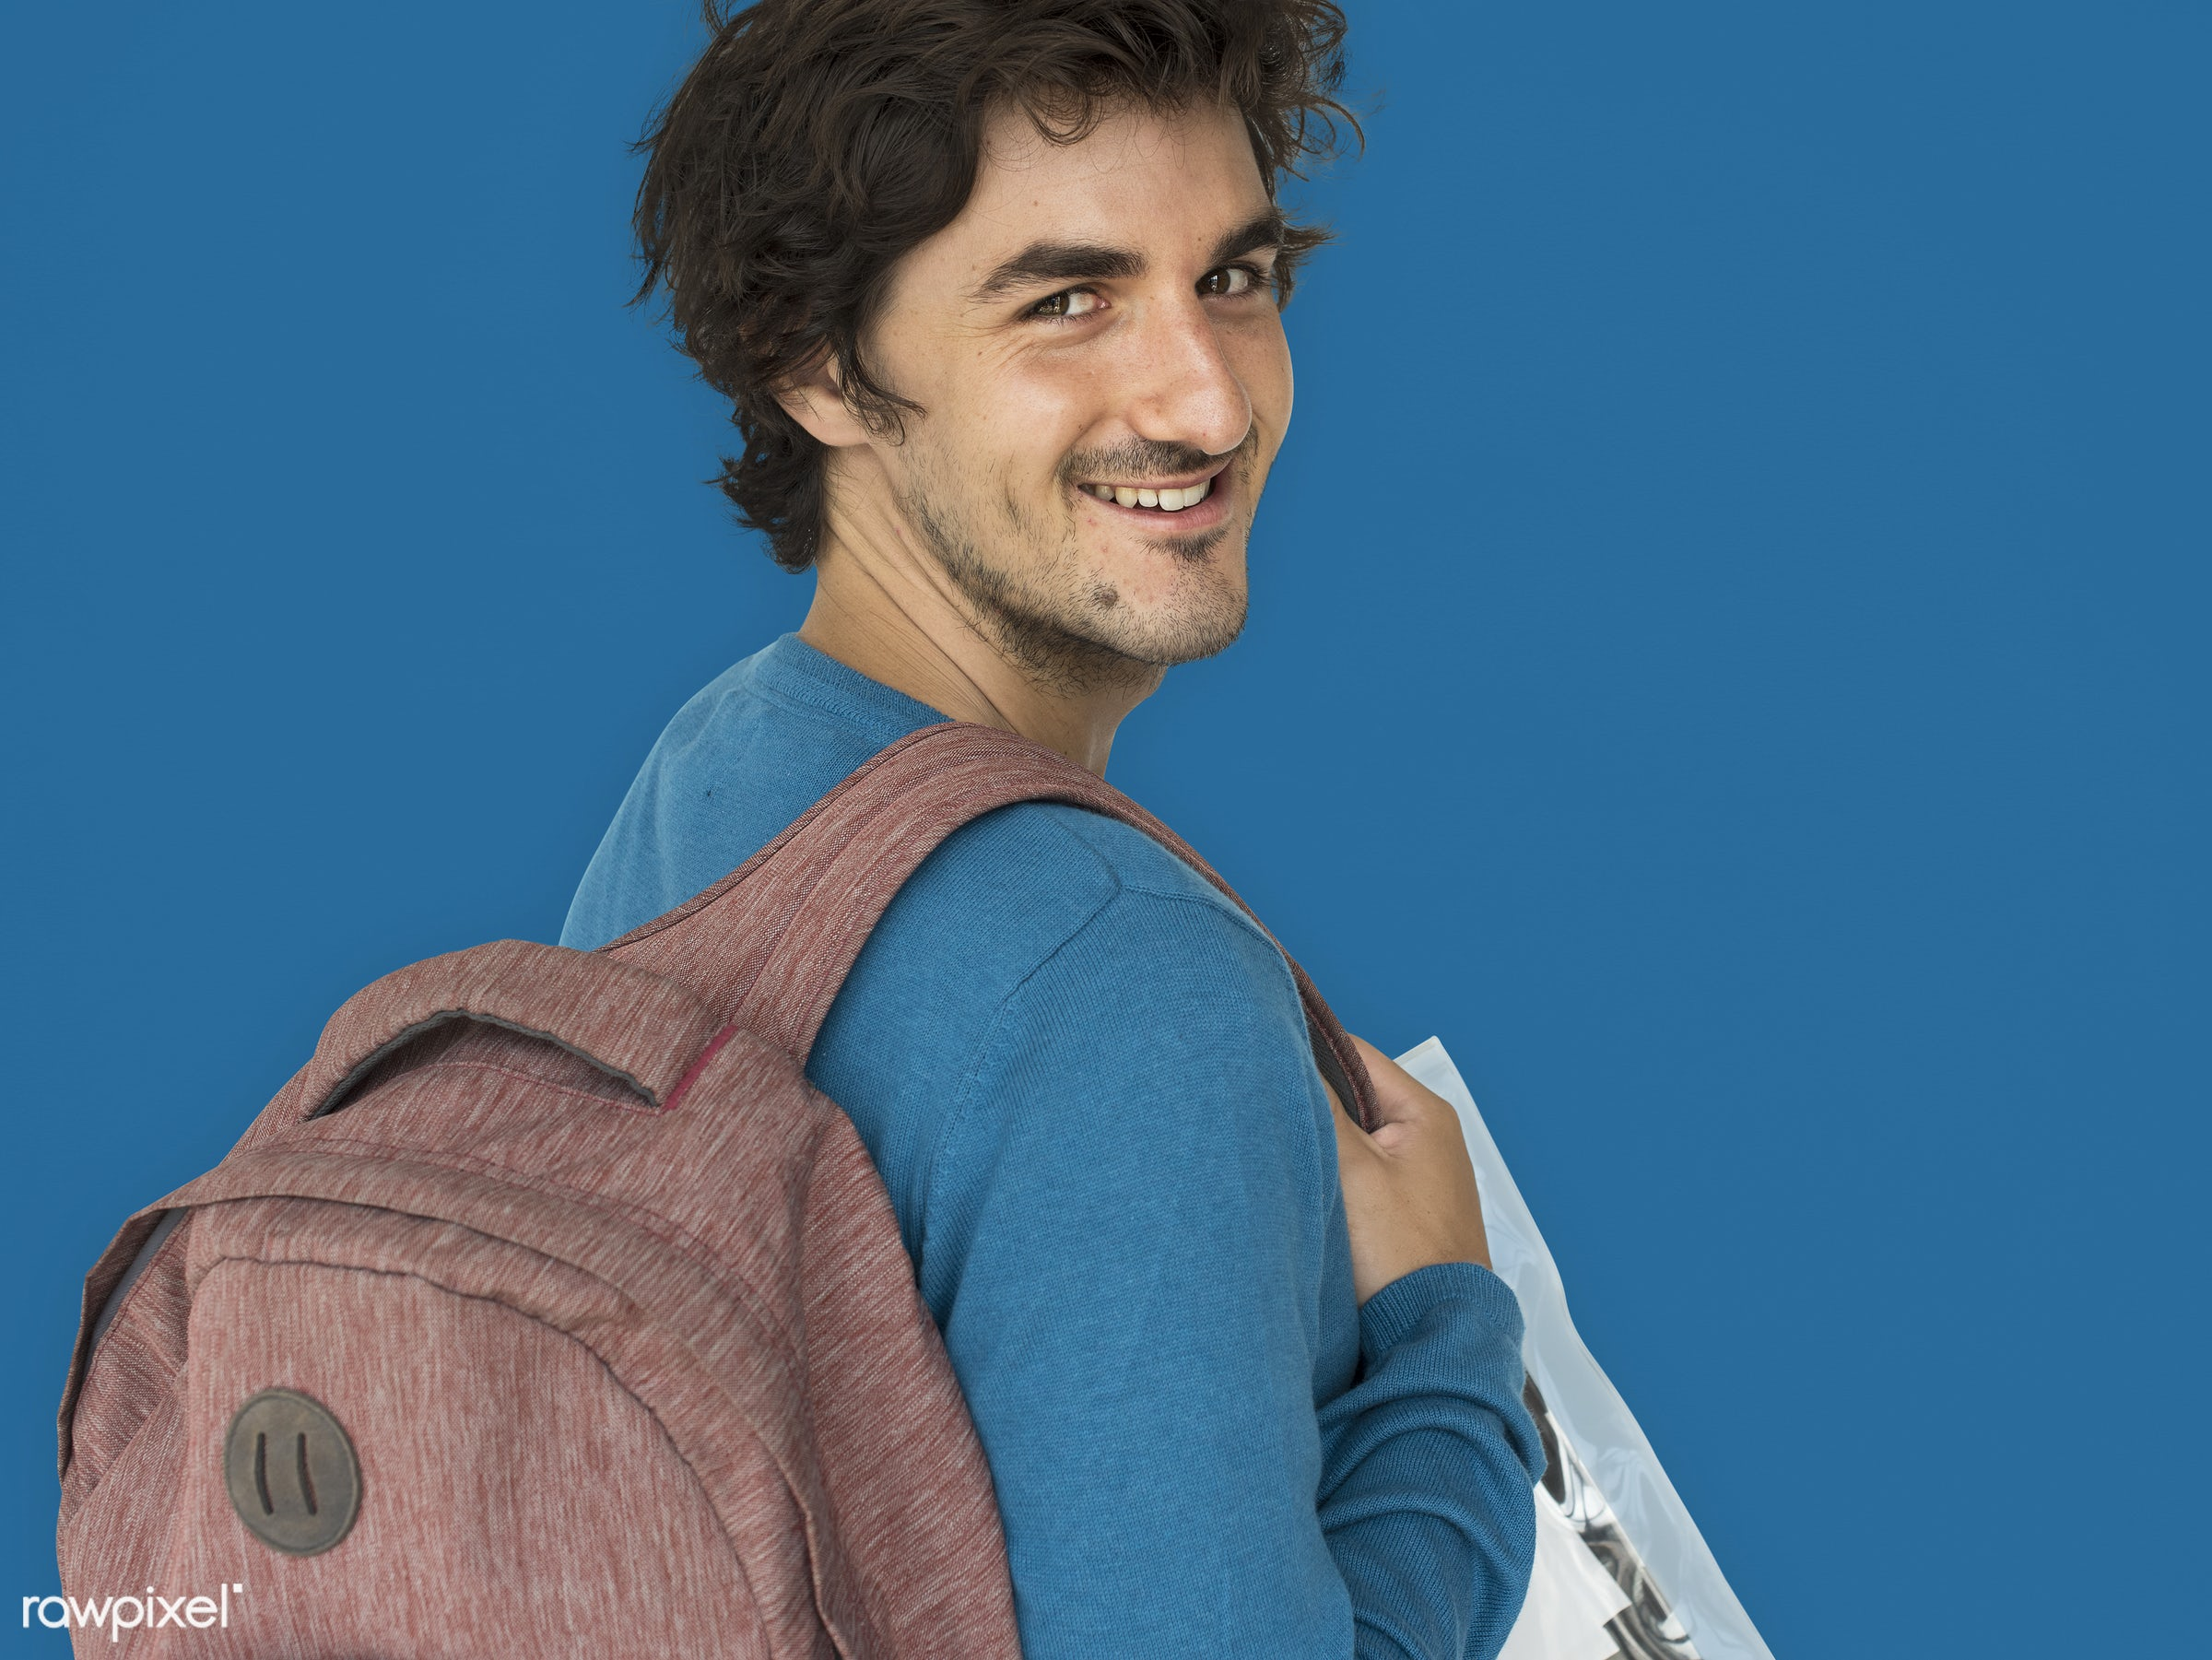 studio, expression, person, vibrant, people, caucasian, lifestyle, schoolbag, positive, smile, cheerful, isolated, bag,...